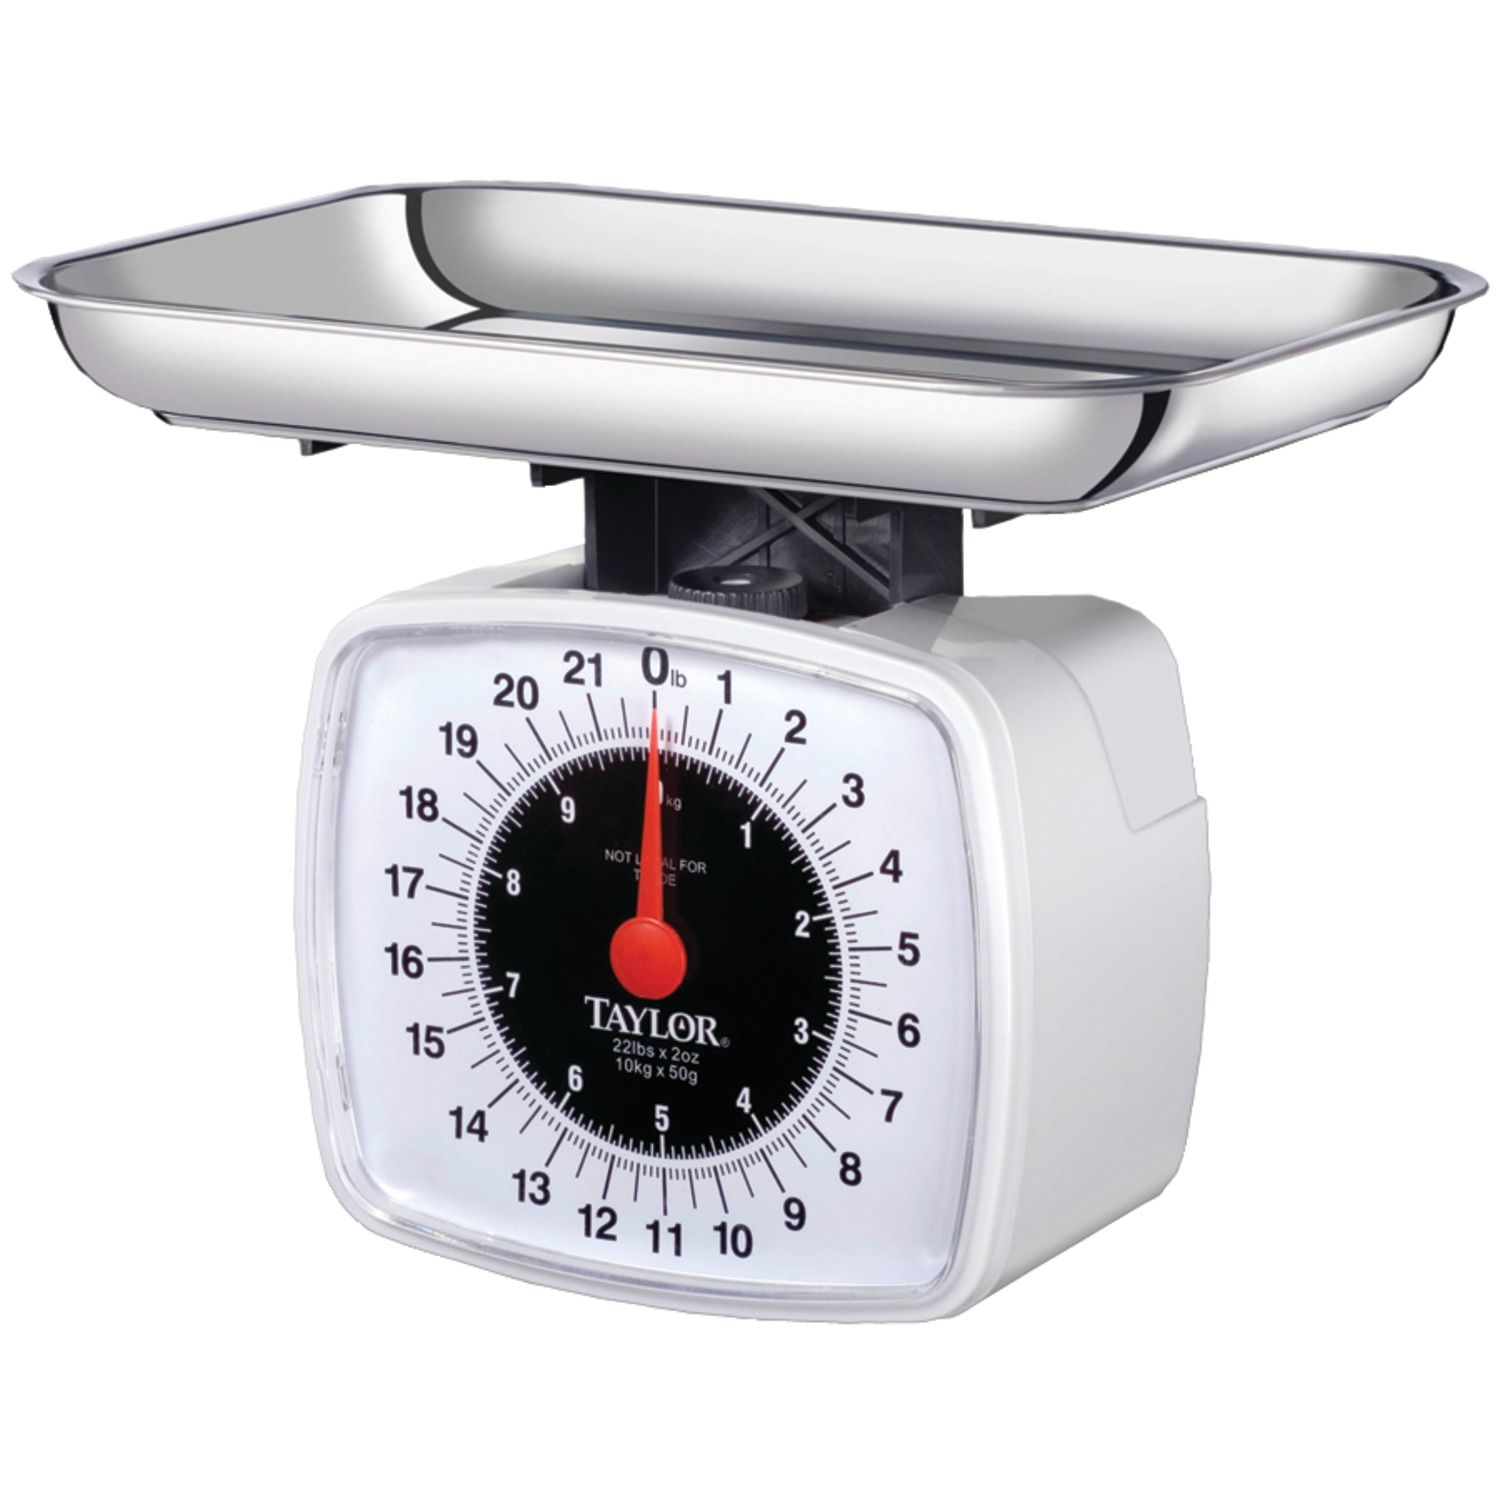 Taylor Precision Products 3880 Kitchen & Food Scale, 22 Lbs